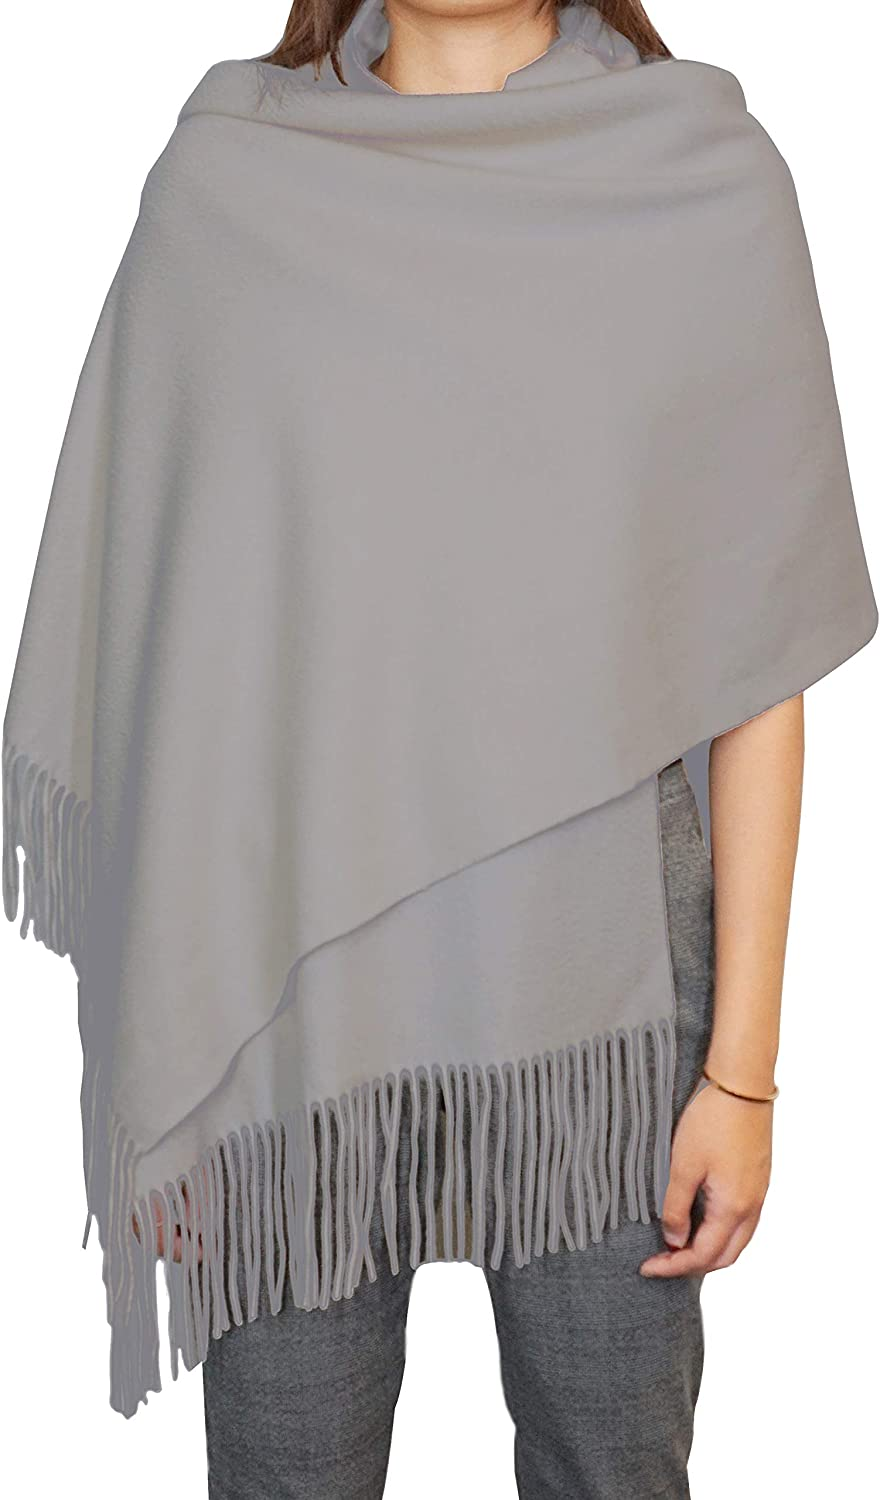 State Cheap mail order shopping Cashmere Solid Color 100% Oversized Max 49% OFF Fringe Shawl